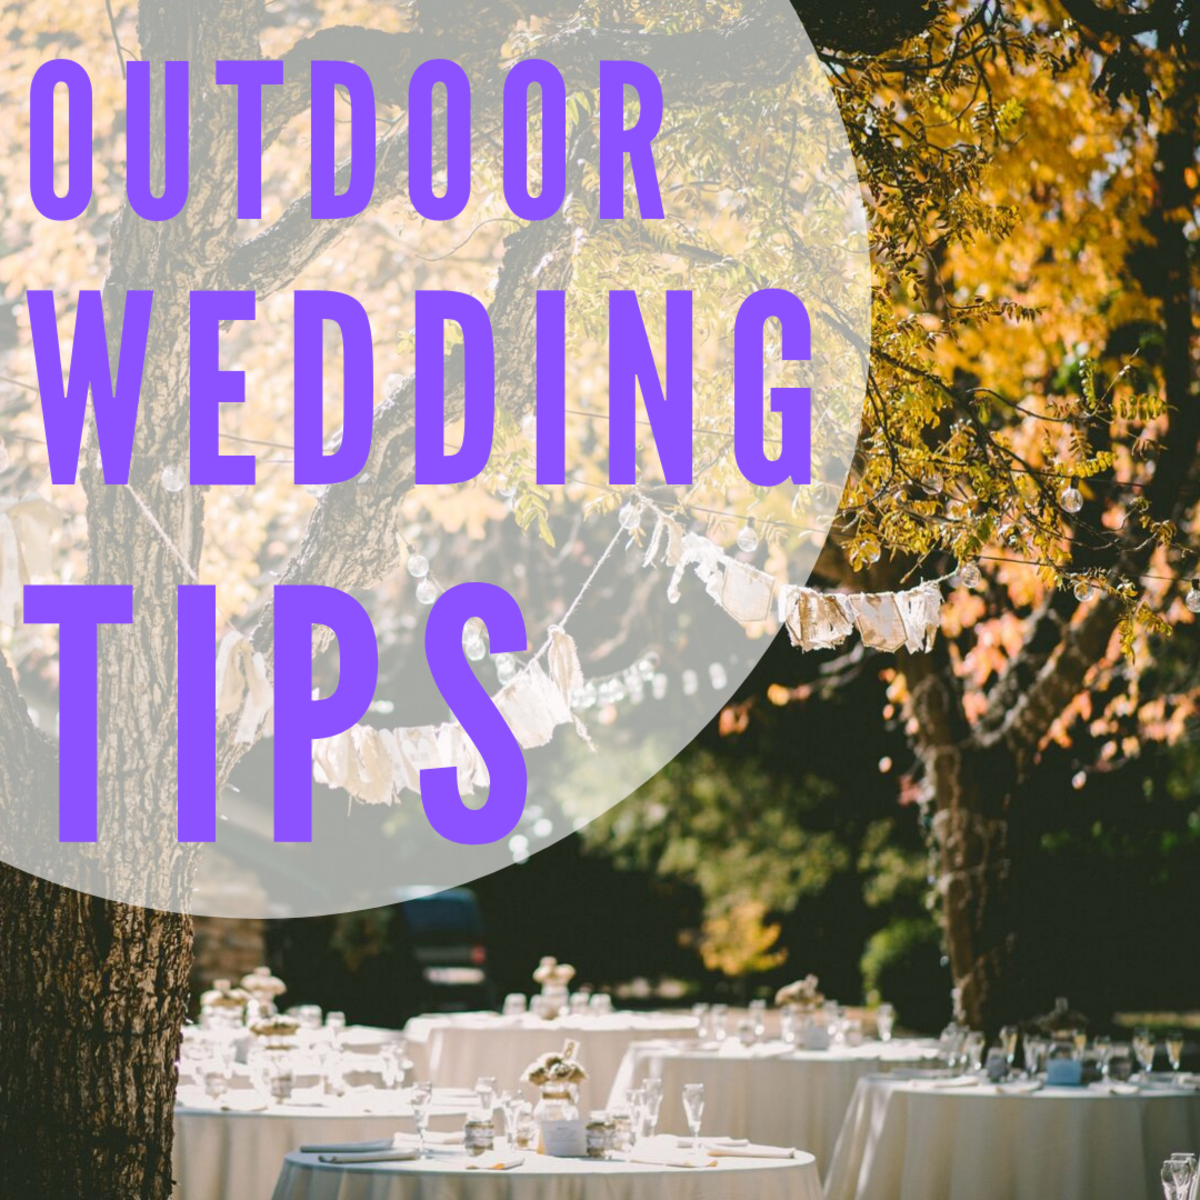 Outdoor Wedding Tips and Tricks